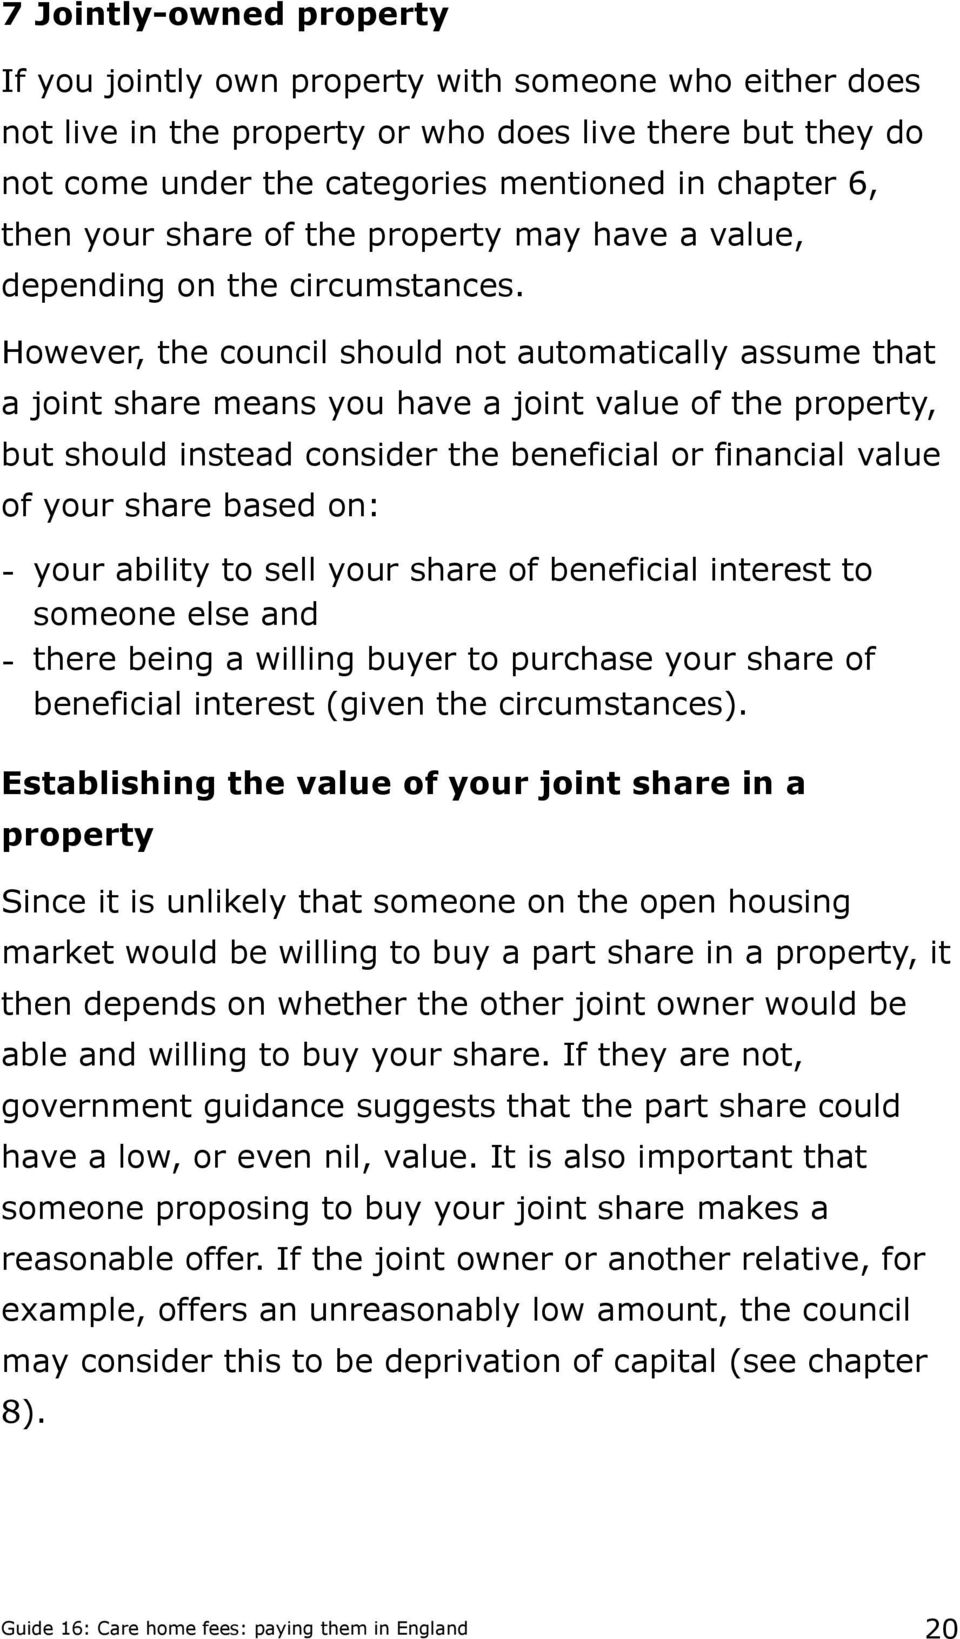 However, the council should not automatically assume that a joint share means you have a joint value of the property, but should instead consider the beneficial or financial value of your share based